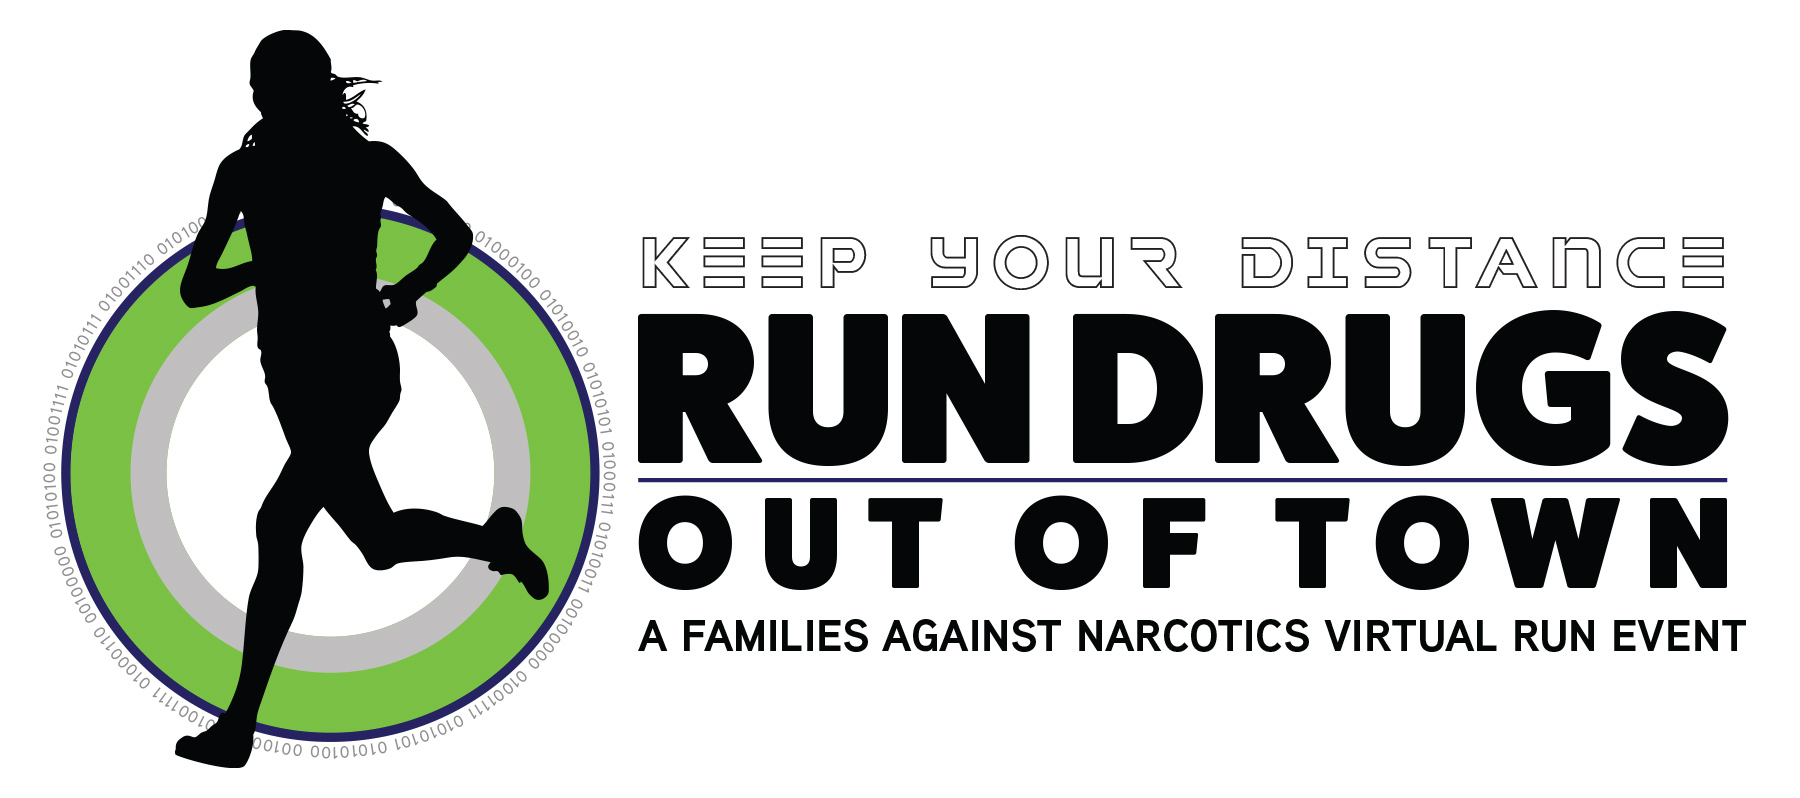 Donate to the 2020 Keep Your Distance | Run Drugs out of Town Virtual Event